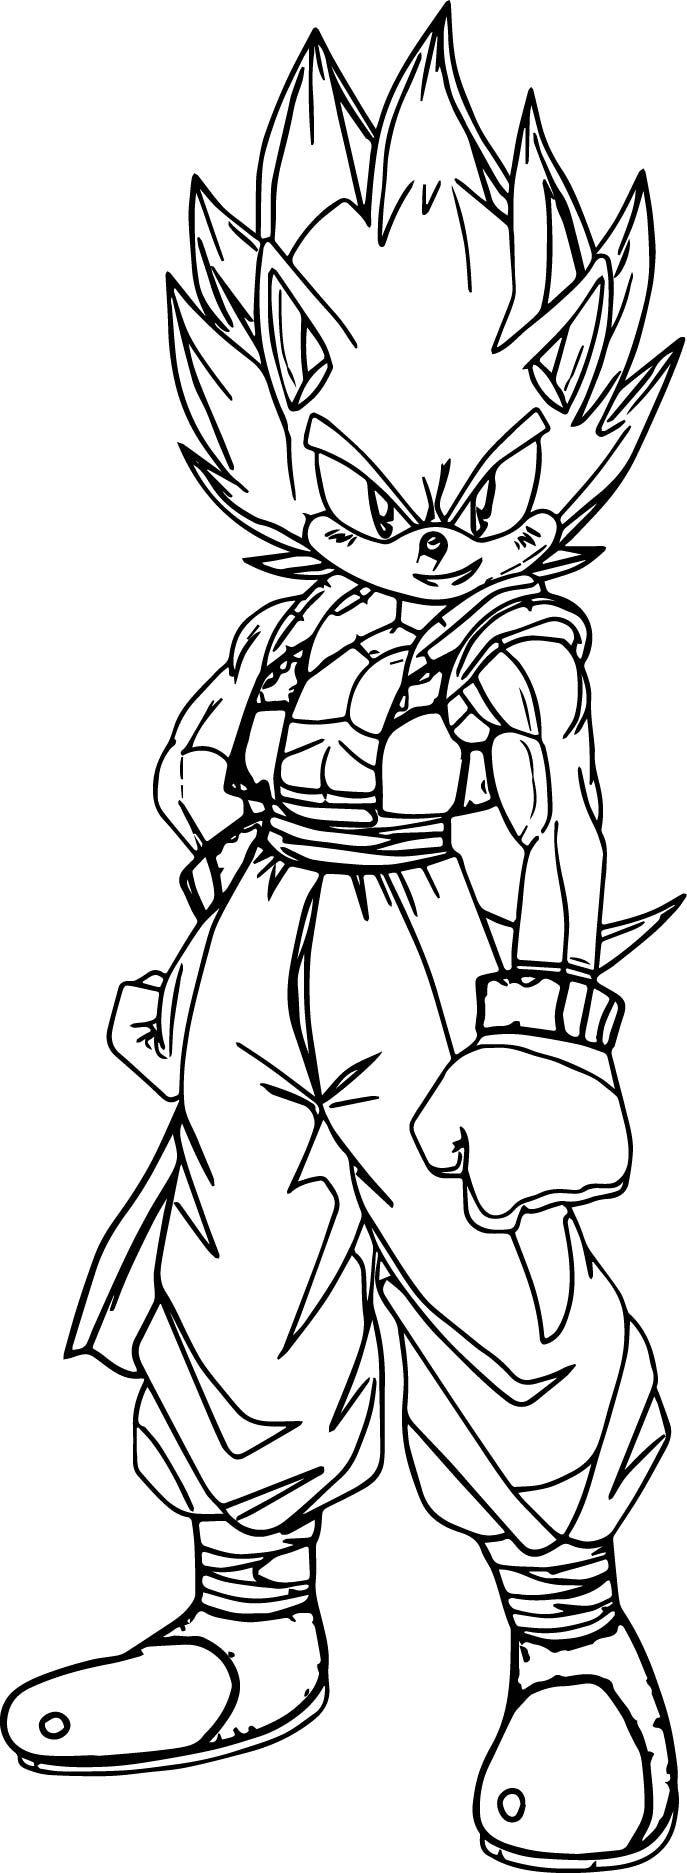 Awesome Goku Sonic Coloring Page Coloring Pages Coloring Pages